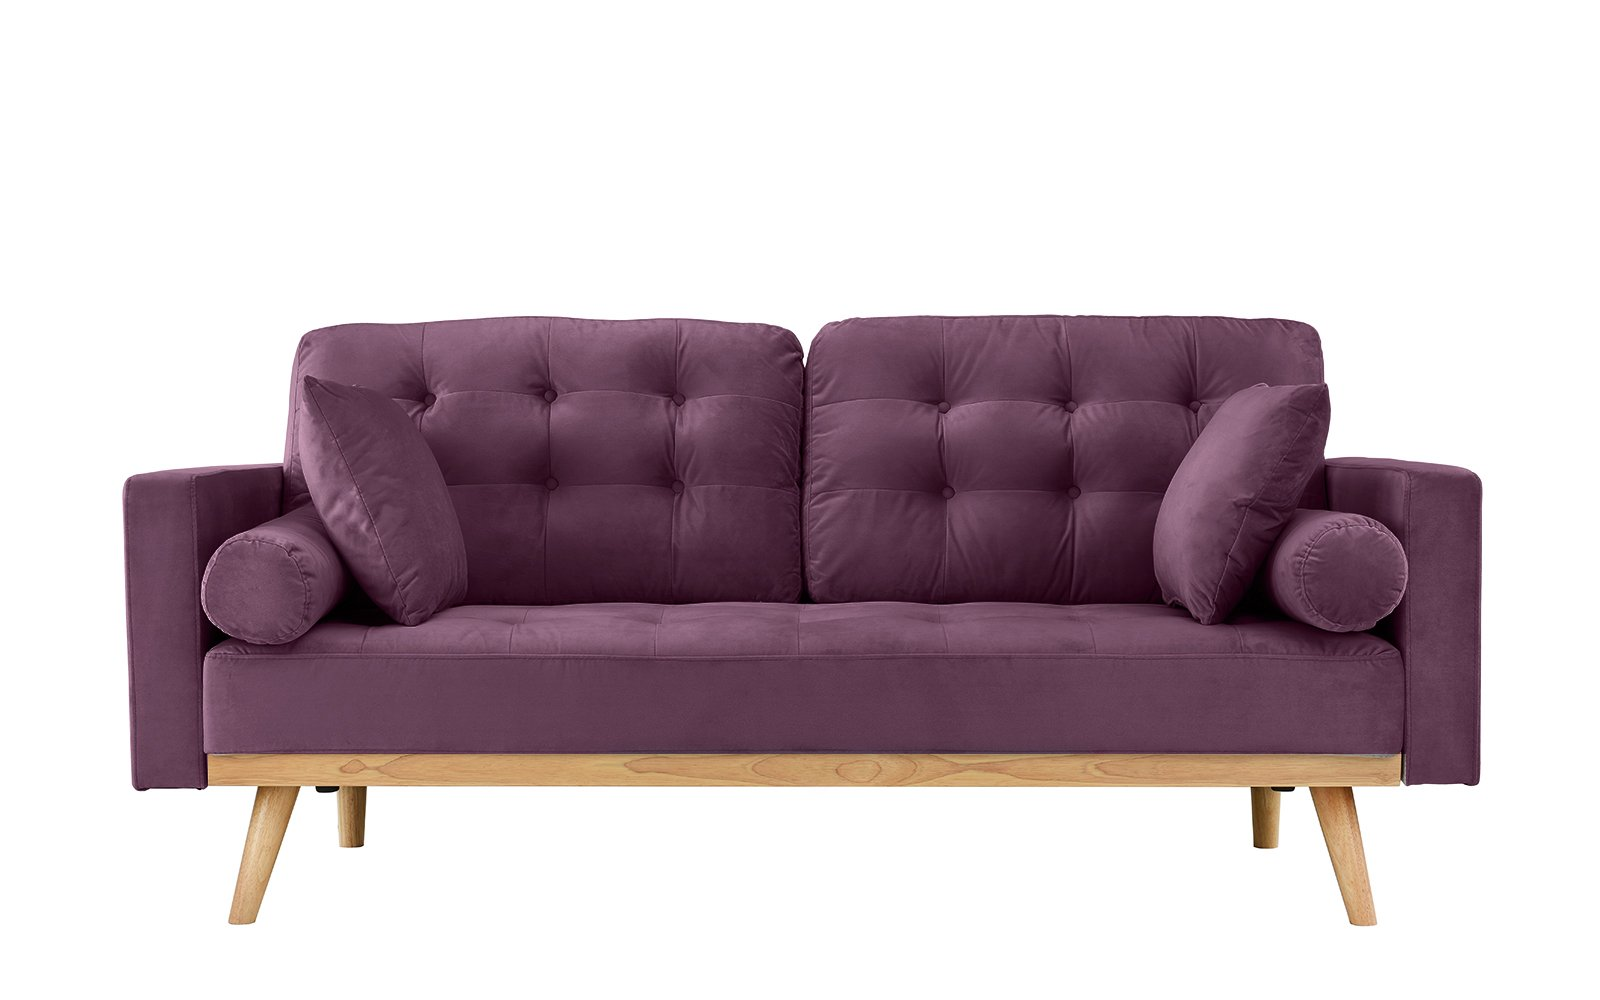 Mid-Century Modern Tufted Velvet Fabric Sofa (Purple) - Modern mid century sofa in various colors - Includes 2 bolster side pillows and 2 square pillows in the same fabric Soft hand picked velvet fabric in tufted button design for a touch of sophistication while still giving your living room a modern feel Super comfortable and stylish - this sofa is perfect for a small space and the colors available are sure to fit your home decor. - sofas-couches, living-room-furniture, living-room - 61rrqoZAYVL -